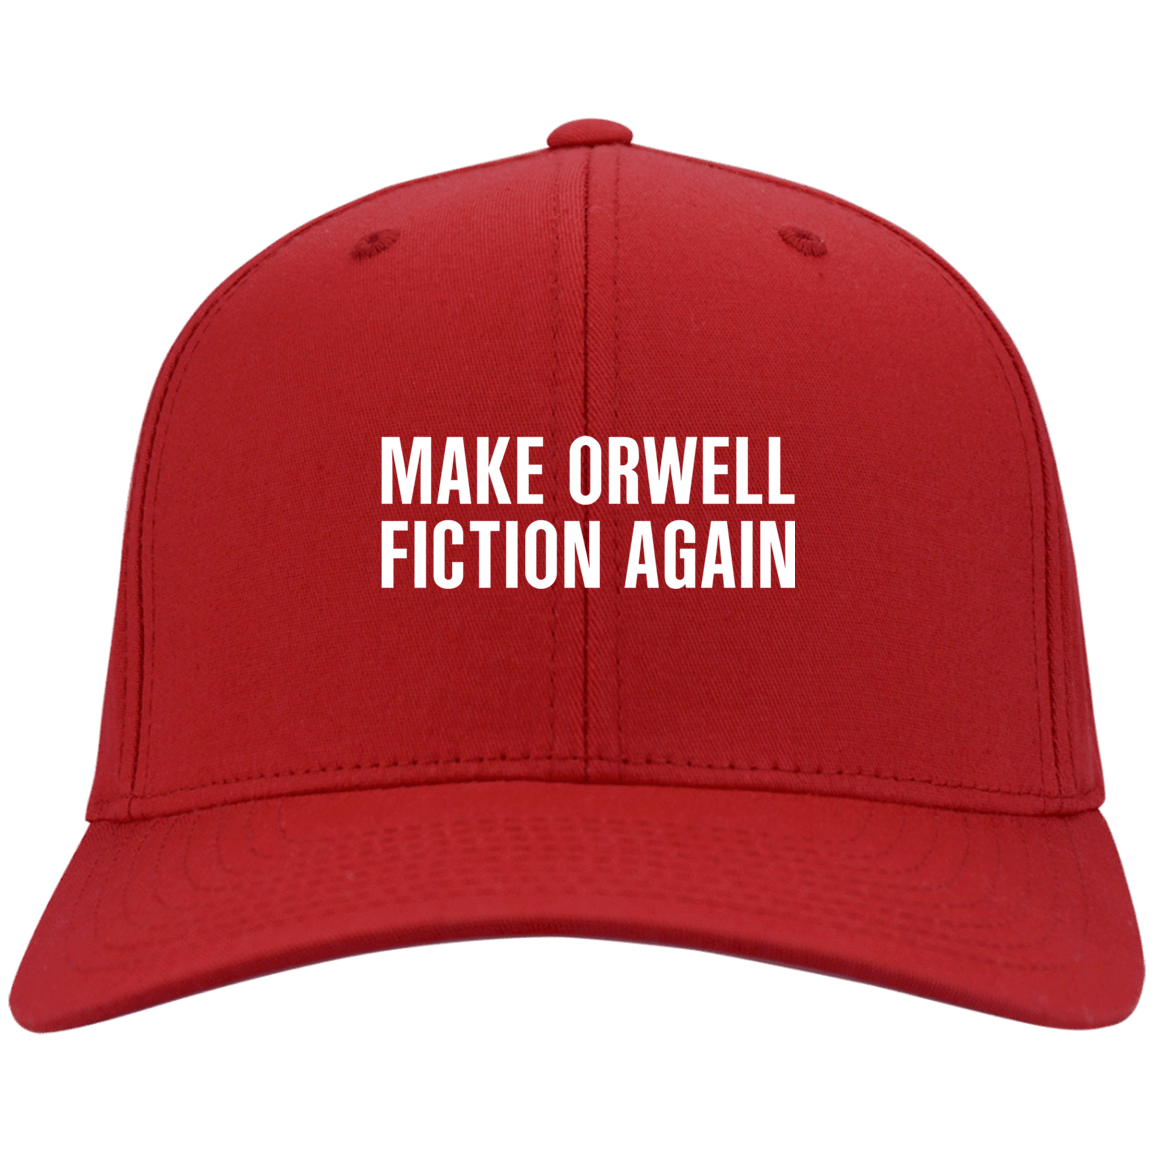 Make Orwell Fiction Again Hat 10-60-74169573-90 - Tee Ript